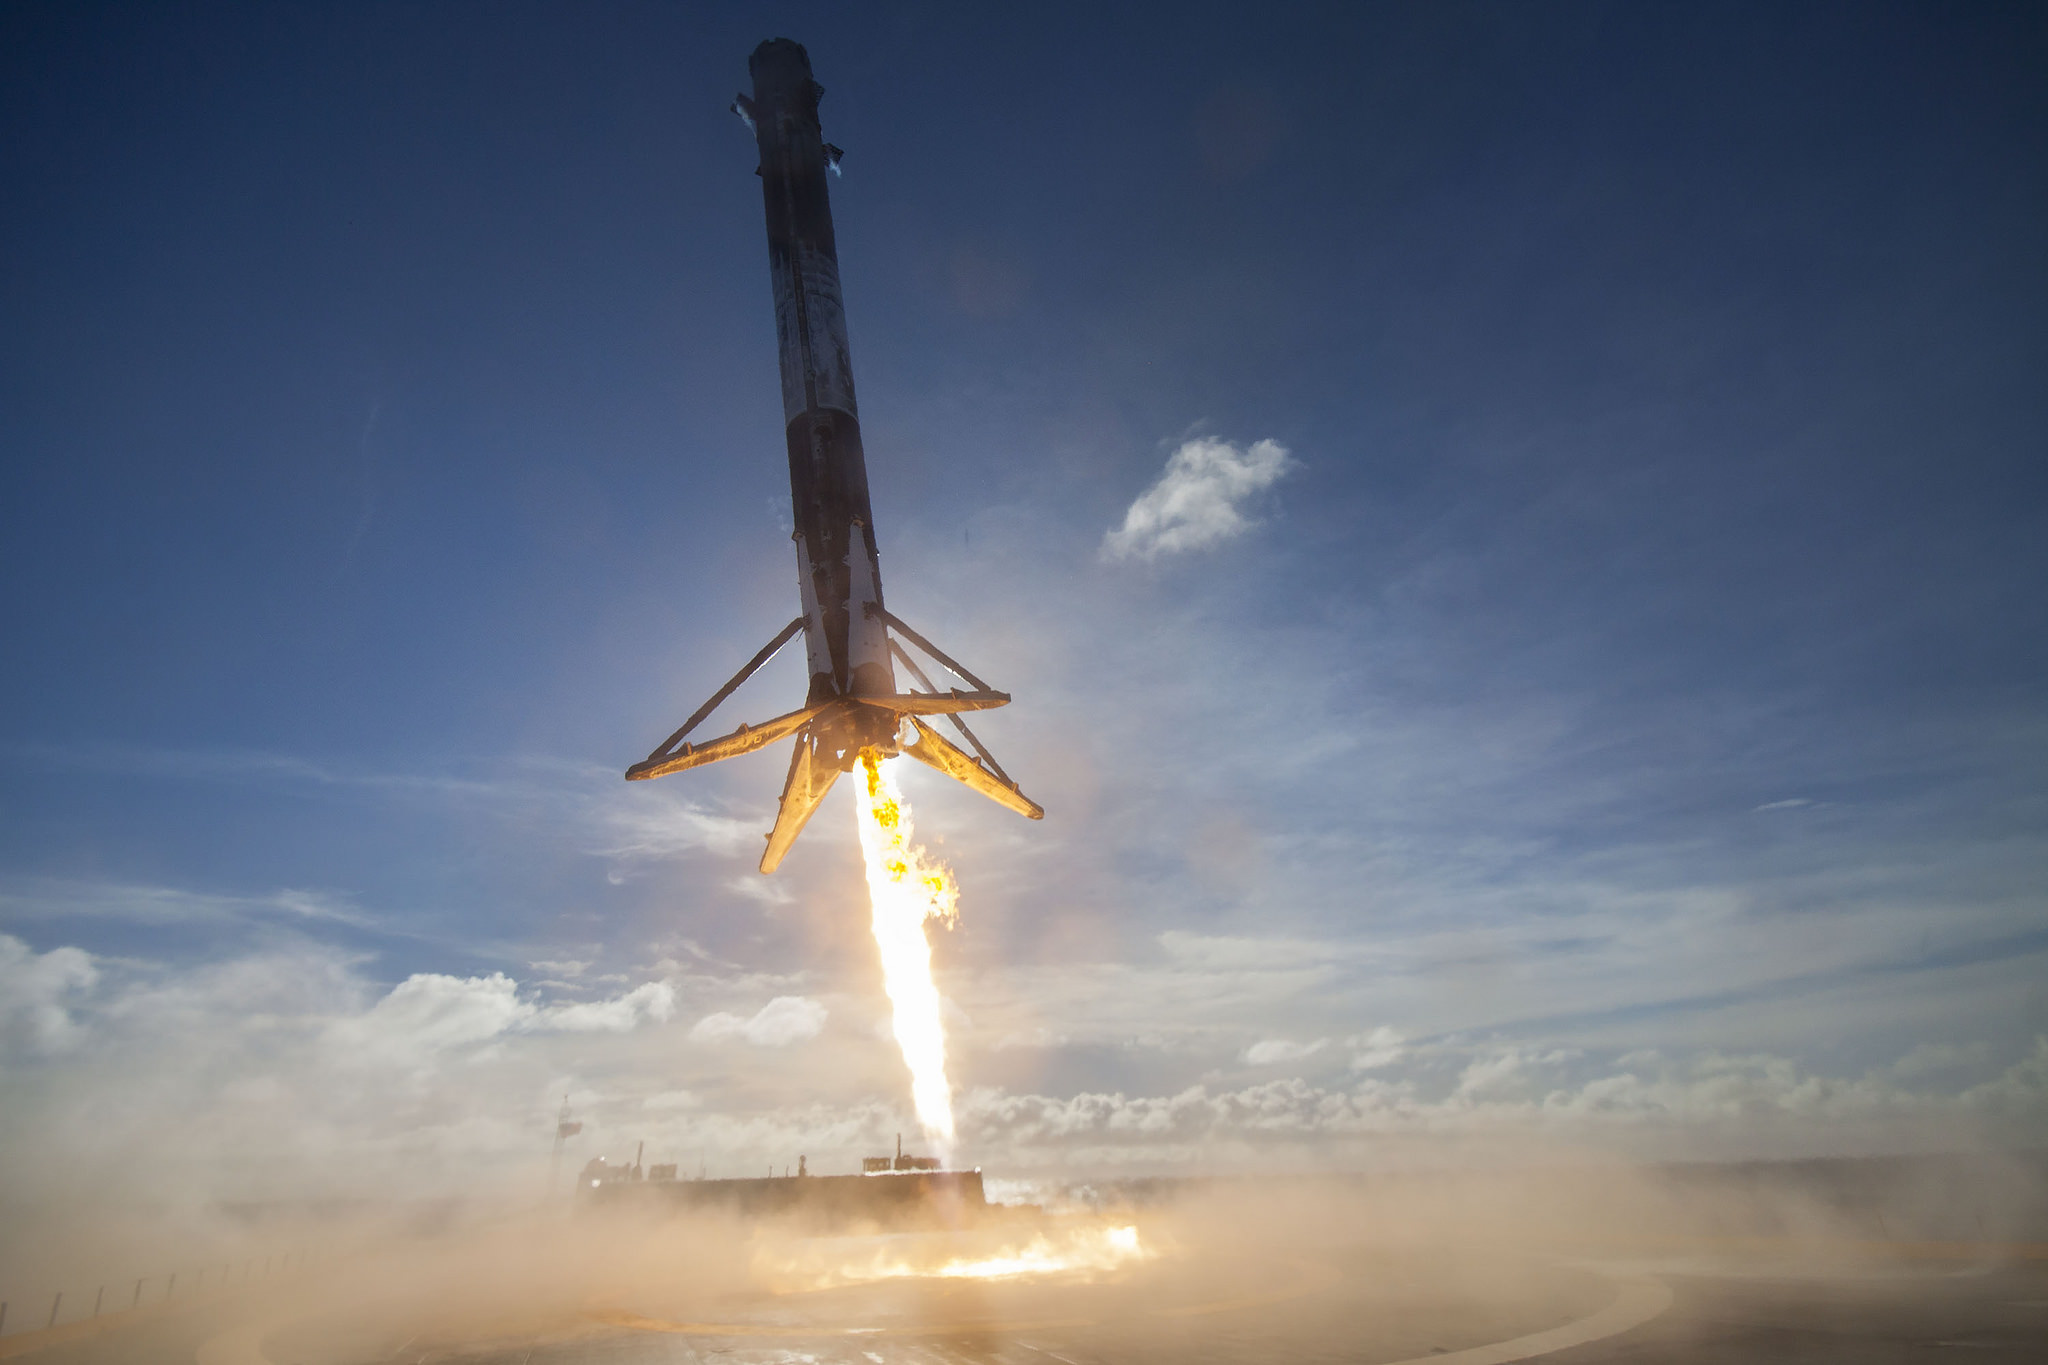 SpaceX's Falcon 9 Rocket Lands on Drone Ship